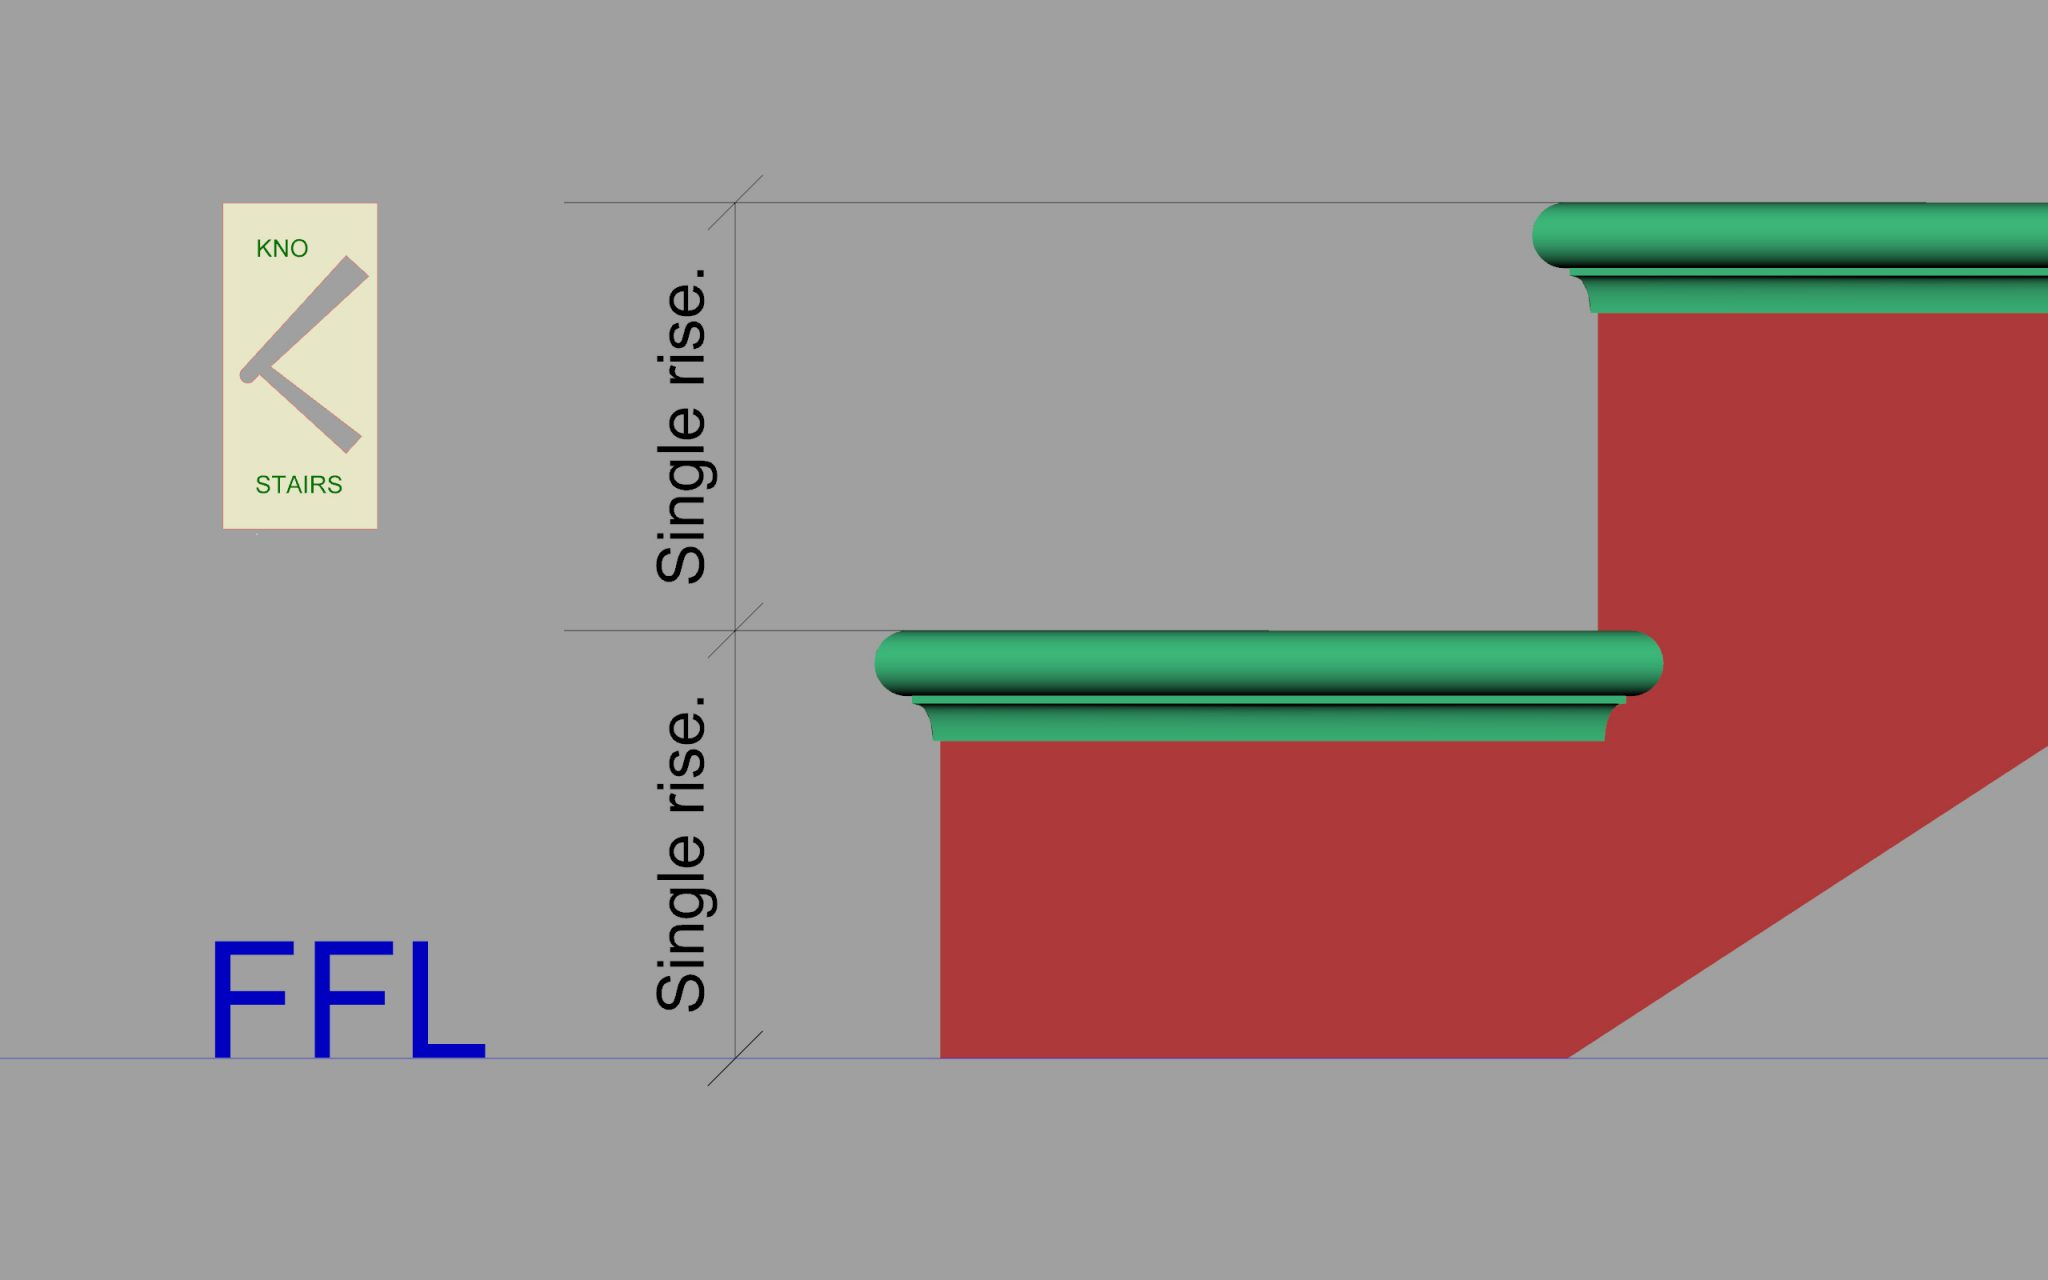 Stair single rise. how to measure a single rise in a staircase.